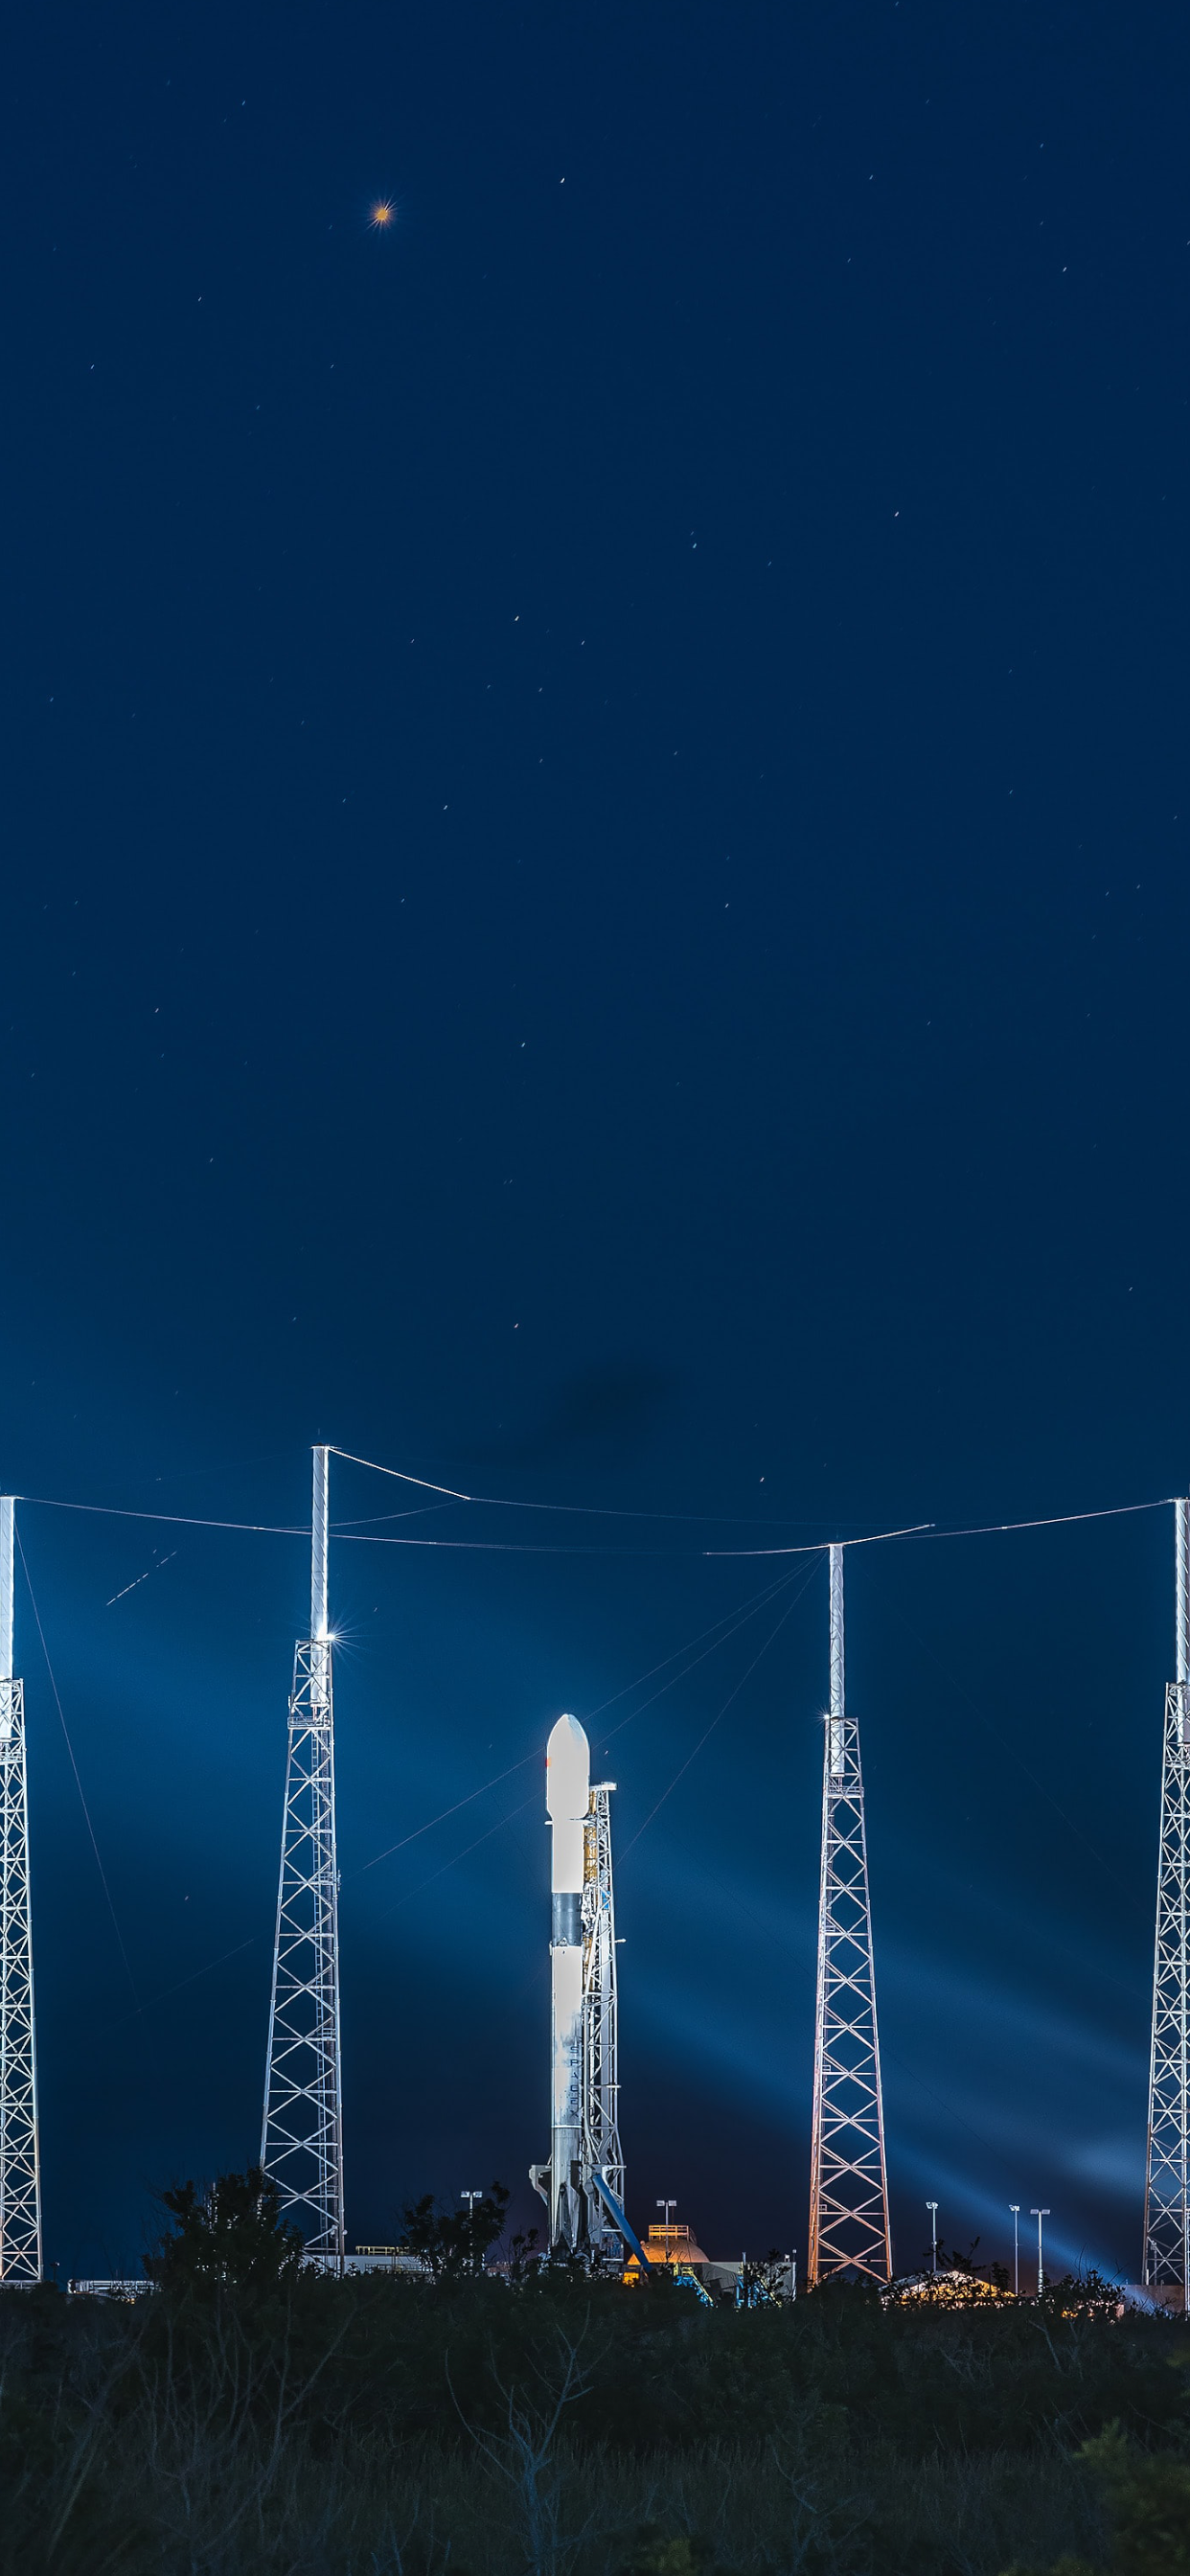 iPhone wallpapers spaceX launch Fonds d'écran iPhone du 02/06/2020